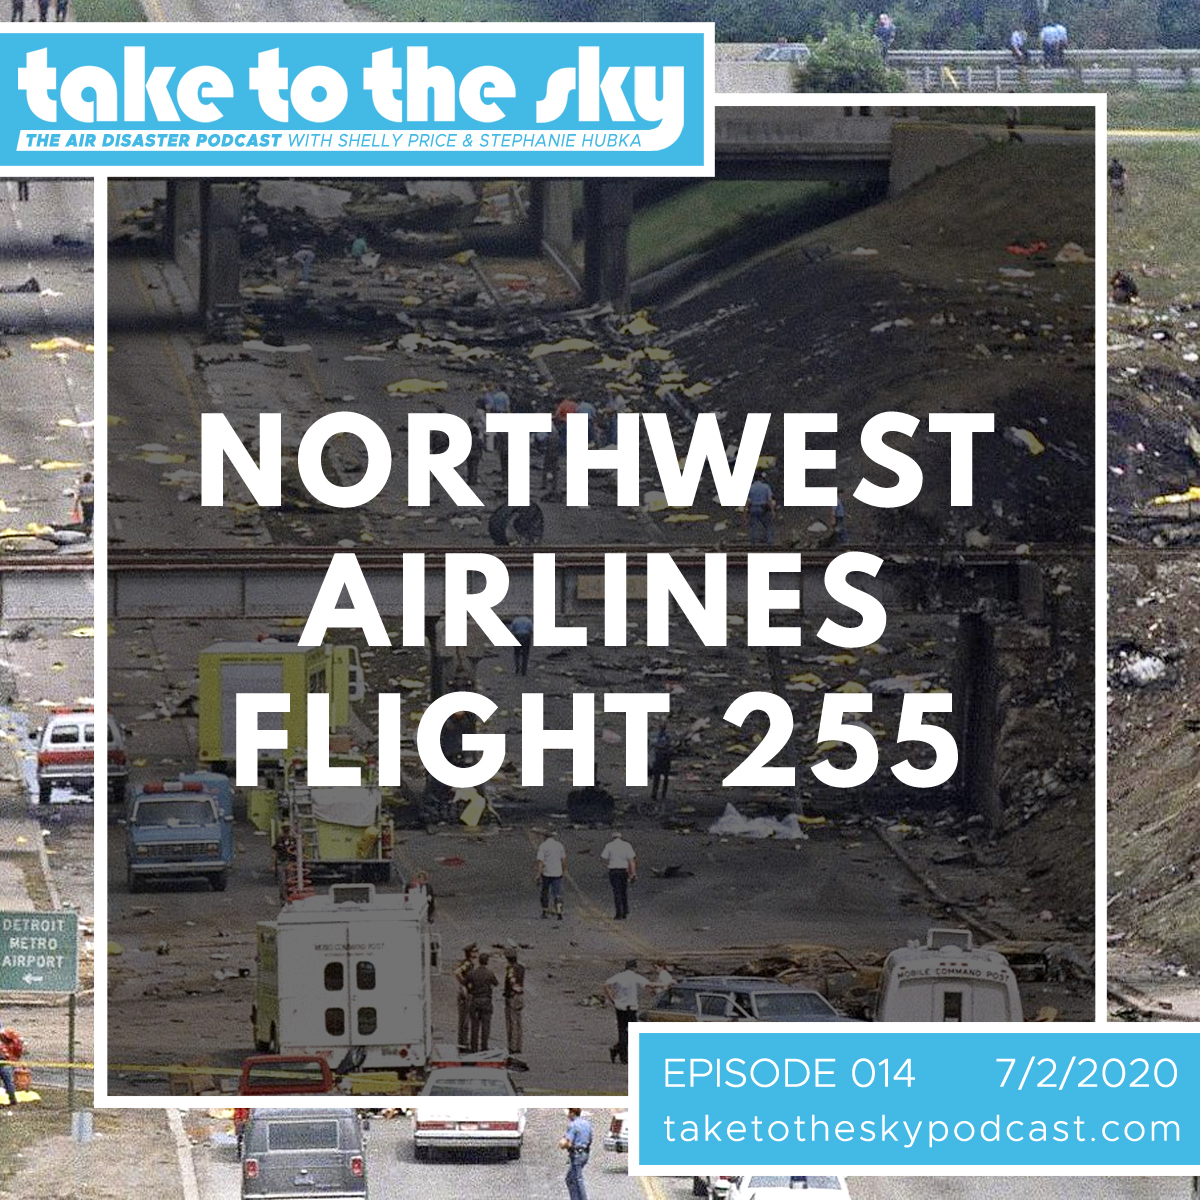 Take to the Sky Episode 014: Northwest Airlines Flight 255